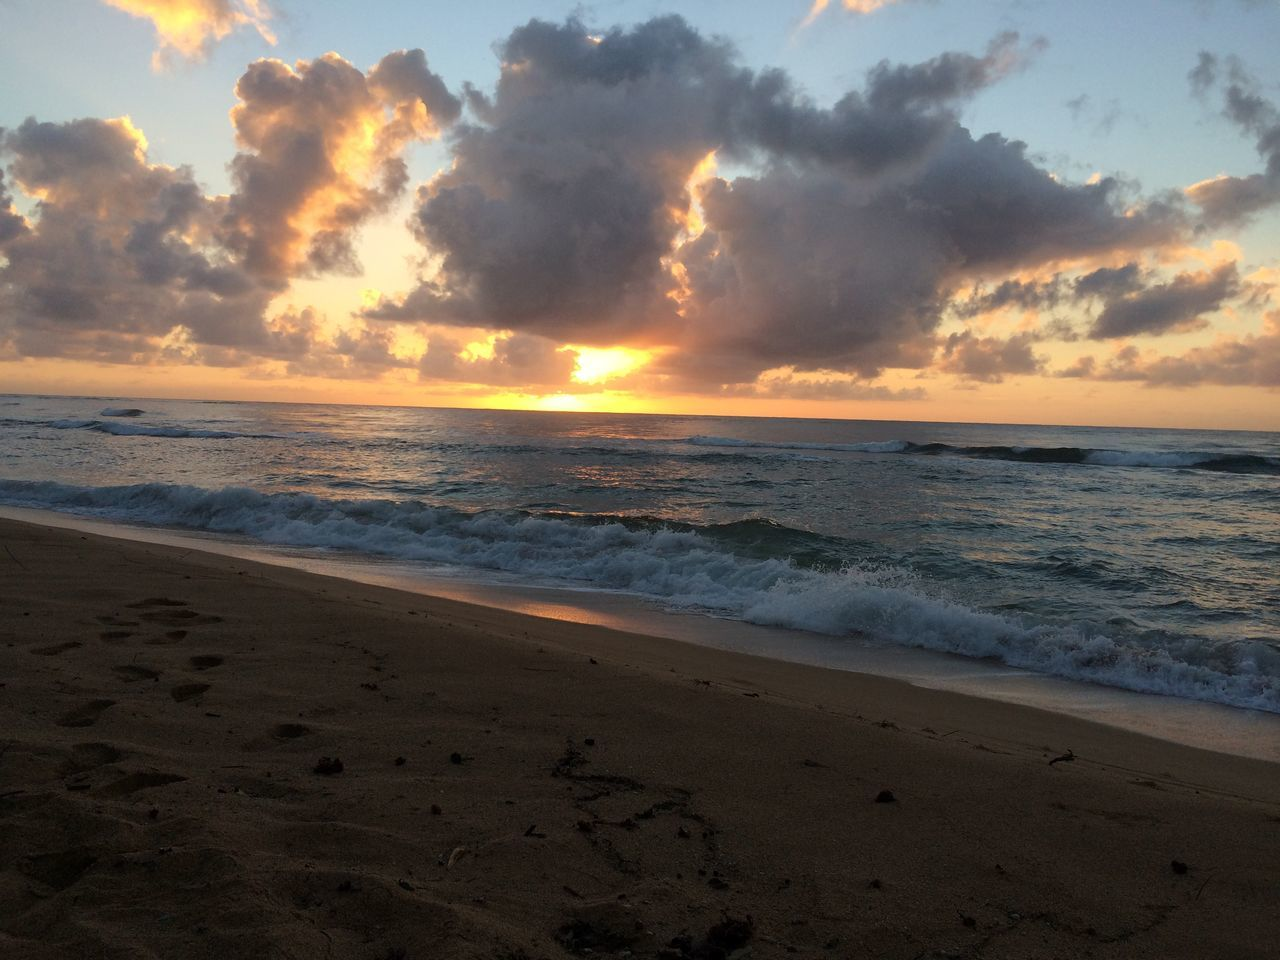 Beautiful sunset. A beautiful walk on the beach. Beach Beauty In Nature Cloud - Sky Horizon Over Water Mauiphotography Nature Outdoors Sand Scenics Sea Shore Sky Sun Sunset Tranquil Scene Tranquility Water Wave